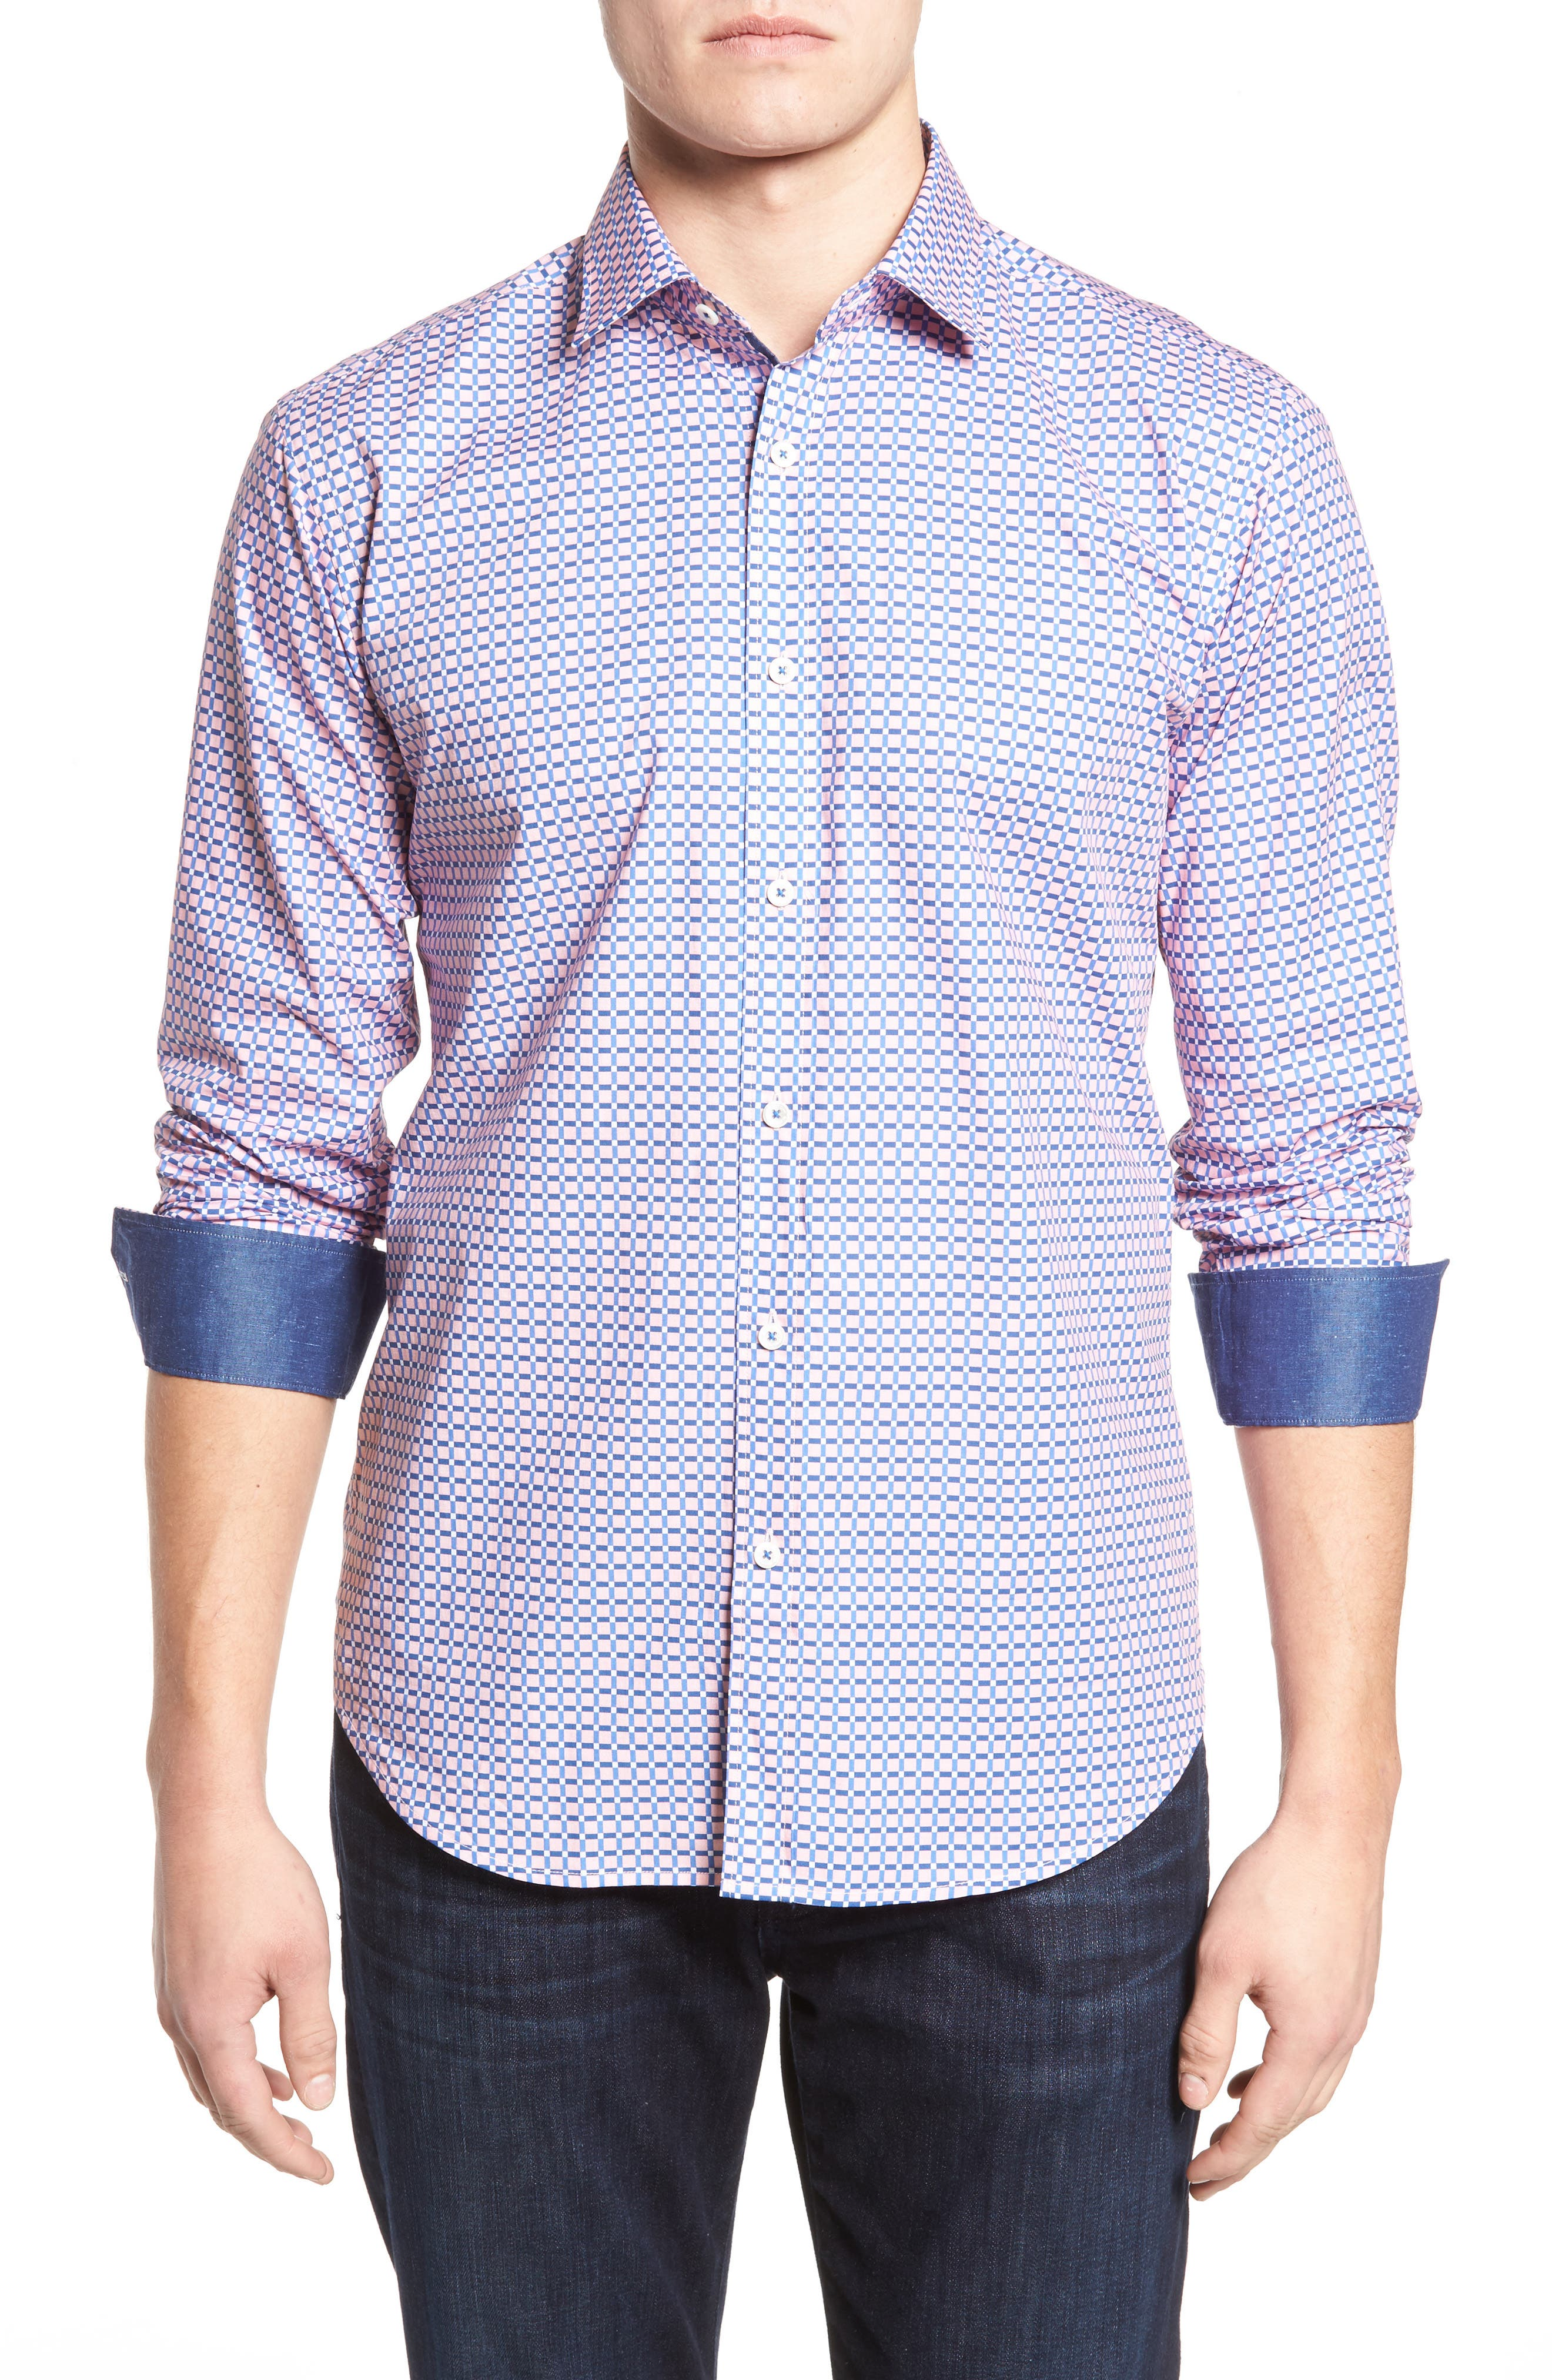 Main Image - Bugatchi Shaped Fit Grid Print Sport Shirt